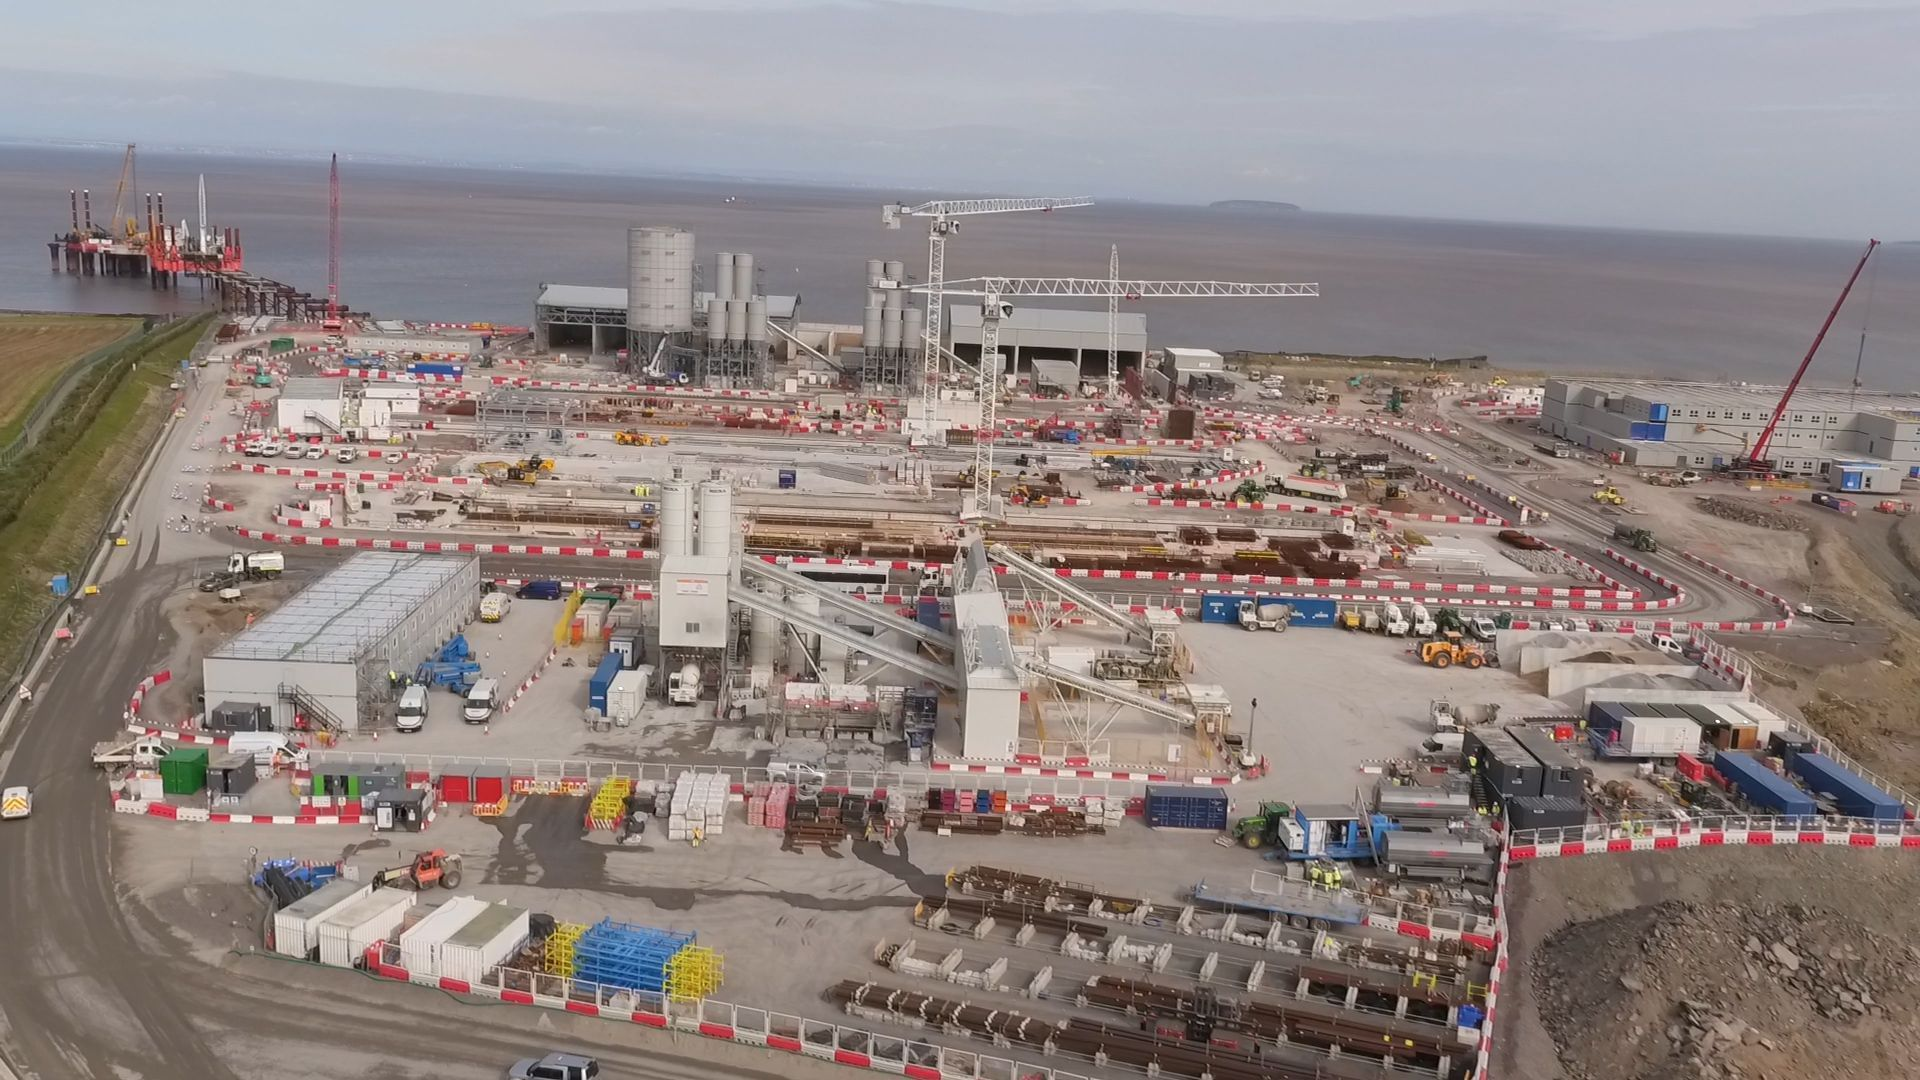 UNDER CONSTRUCTION: There are currently more than 2,000 workers on the Hinkley C site